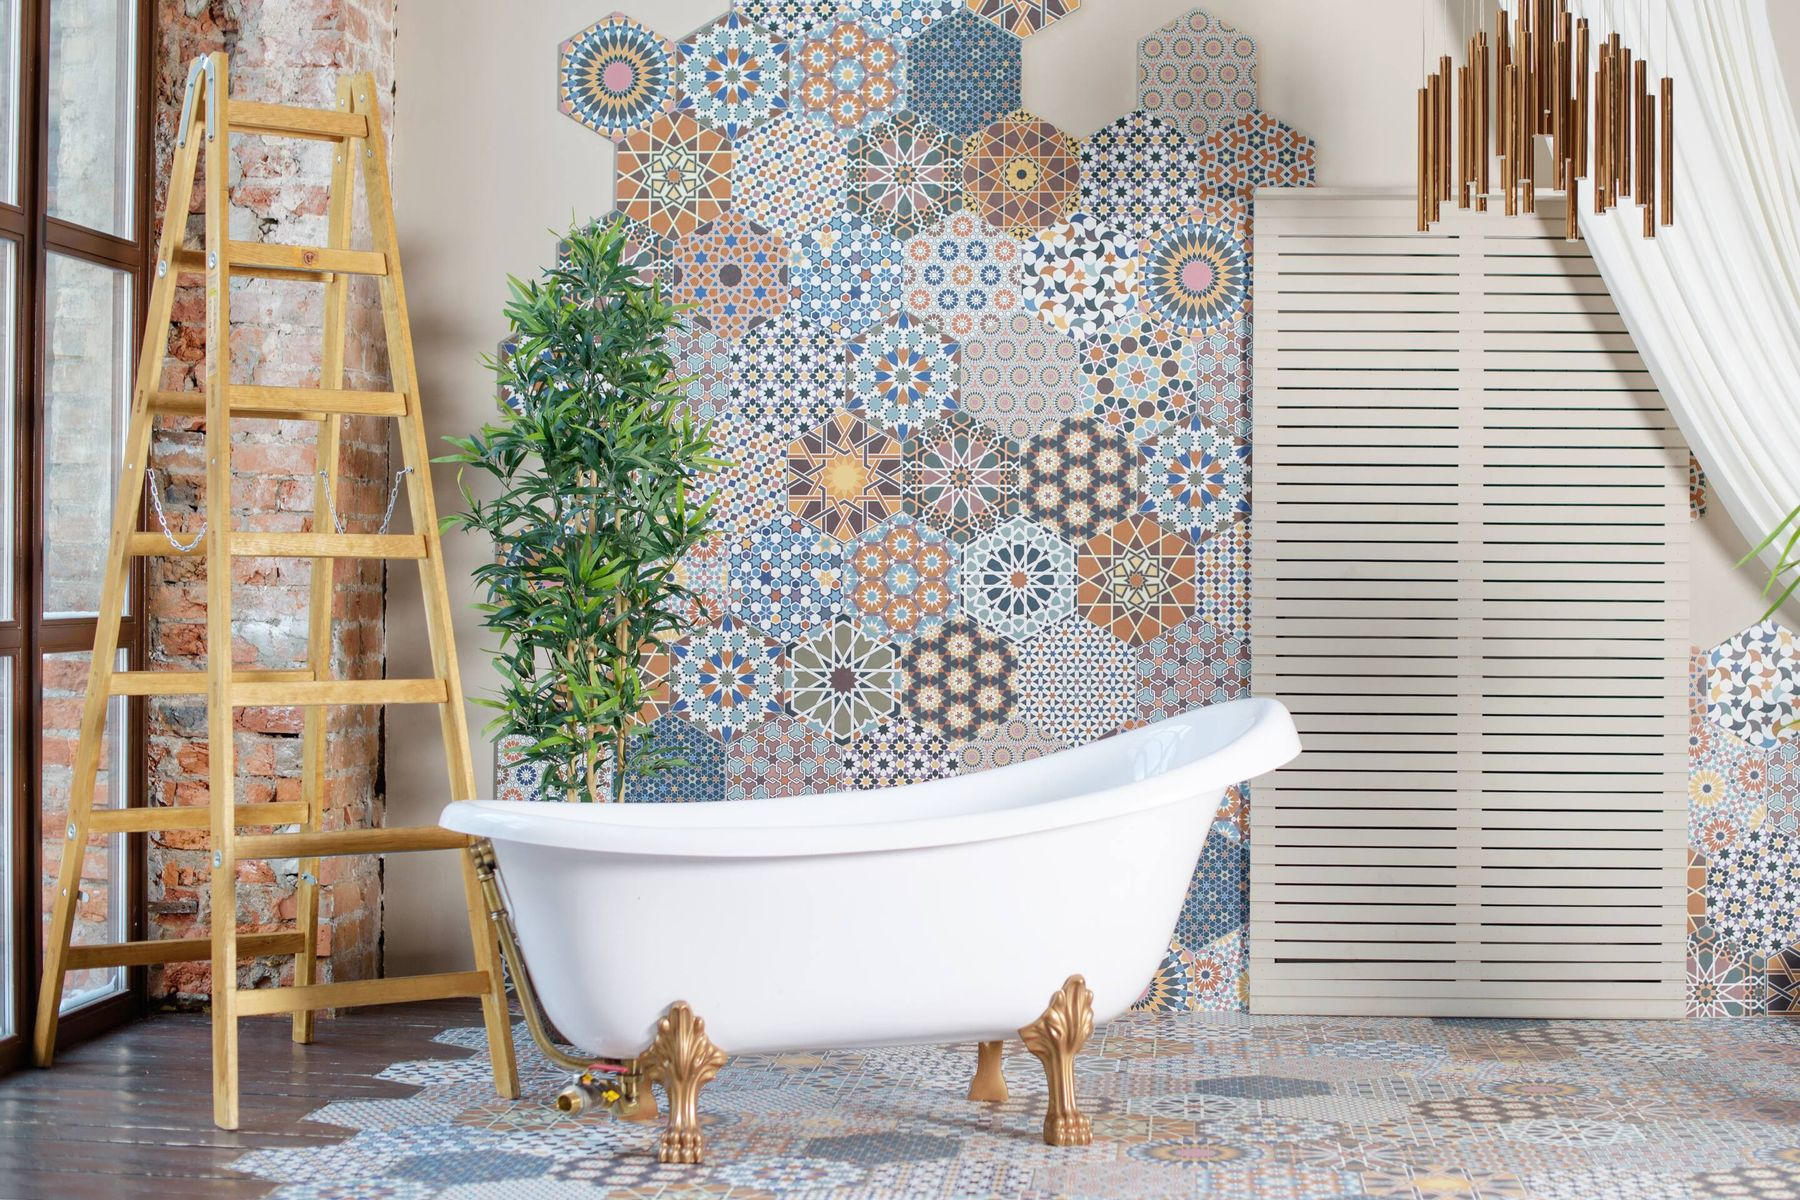 How to Make your Bathroom Tiles Look Brand New | Cleanipedia